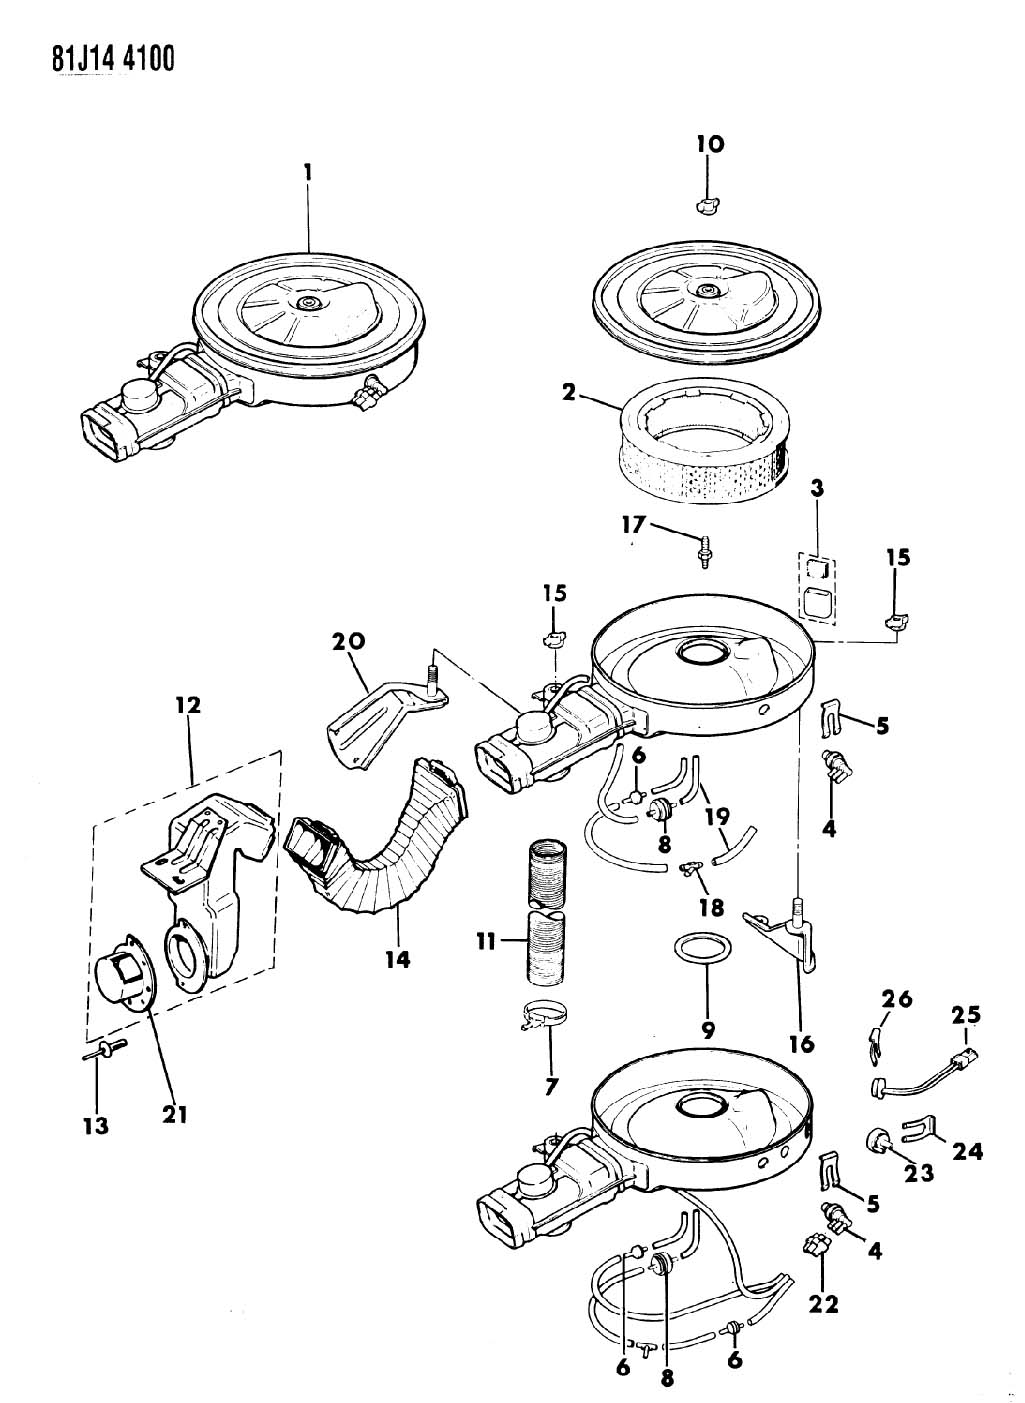 hight resolution of 86 jeep comanche fuel filter 86 get free image about wiring diagram 87 jeep yj vacuum diagram 87 jeep wrangler vacuum line diagram